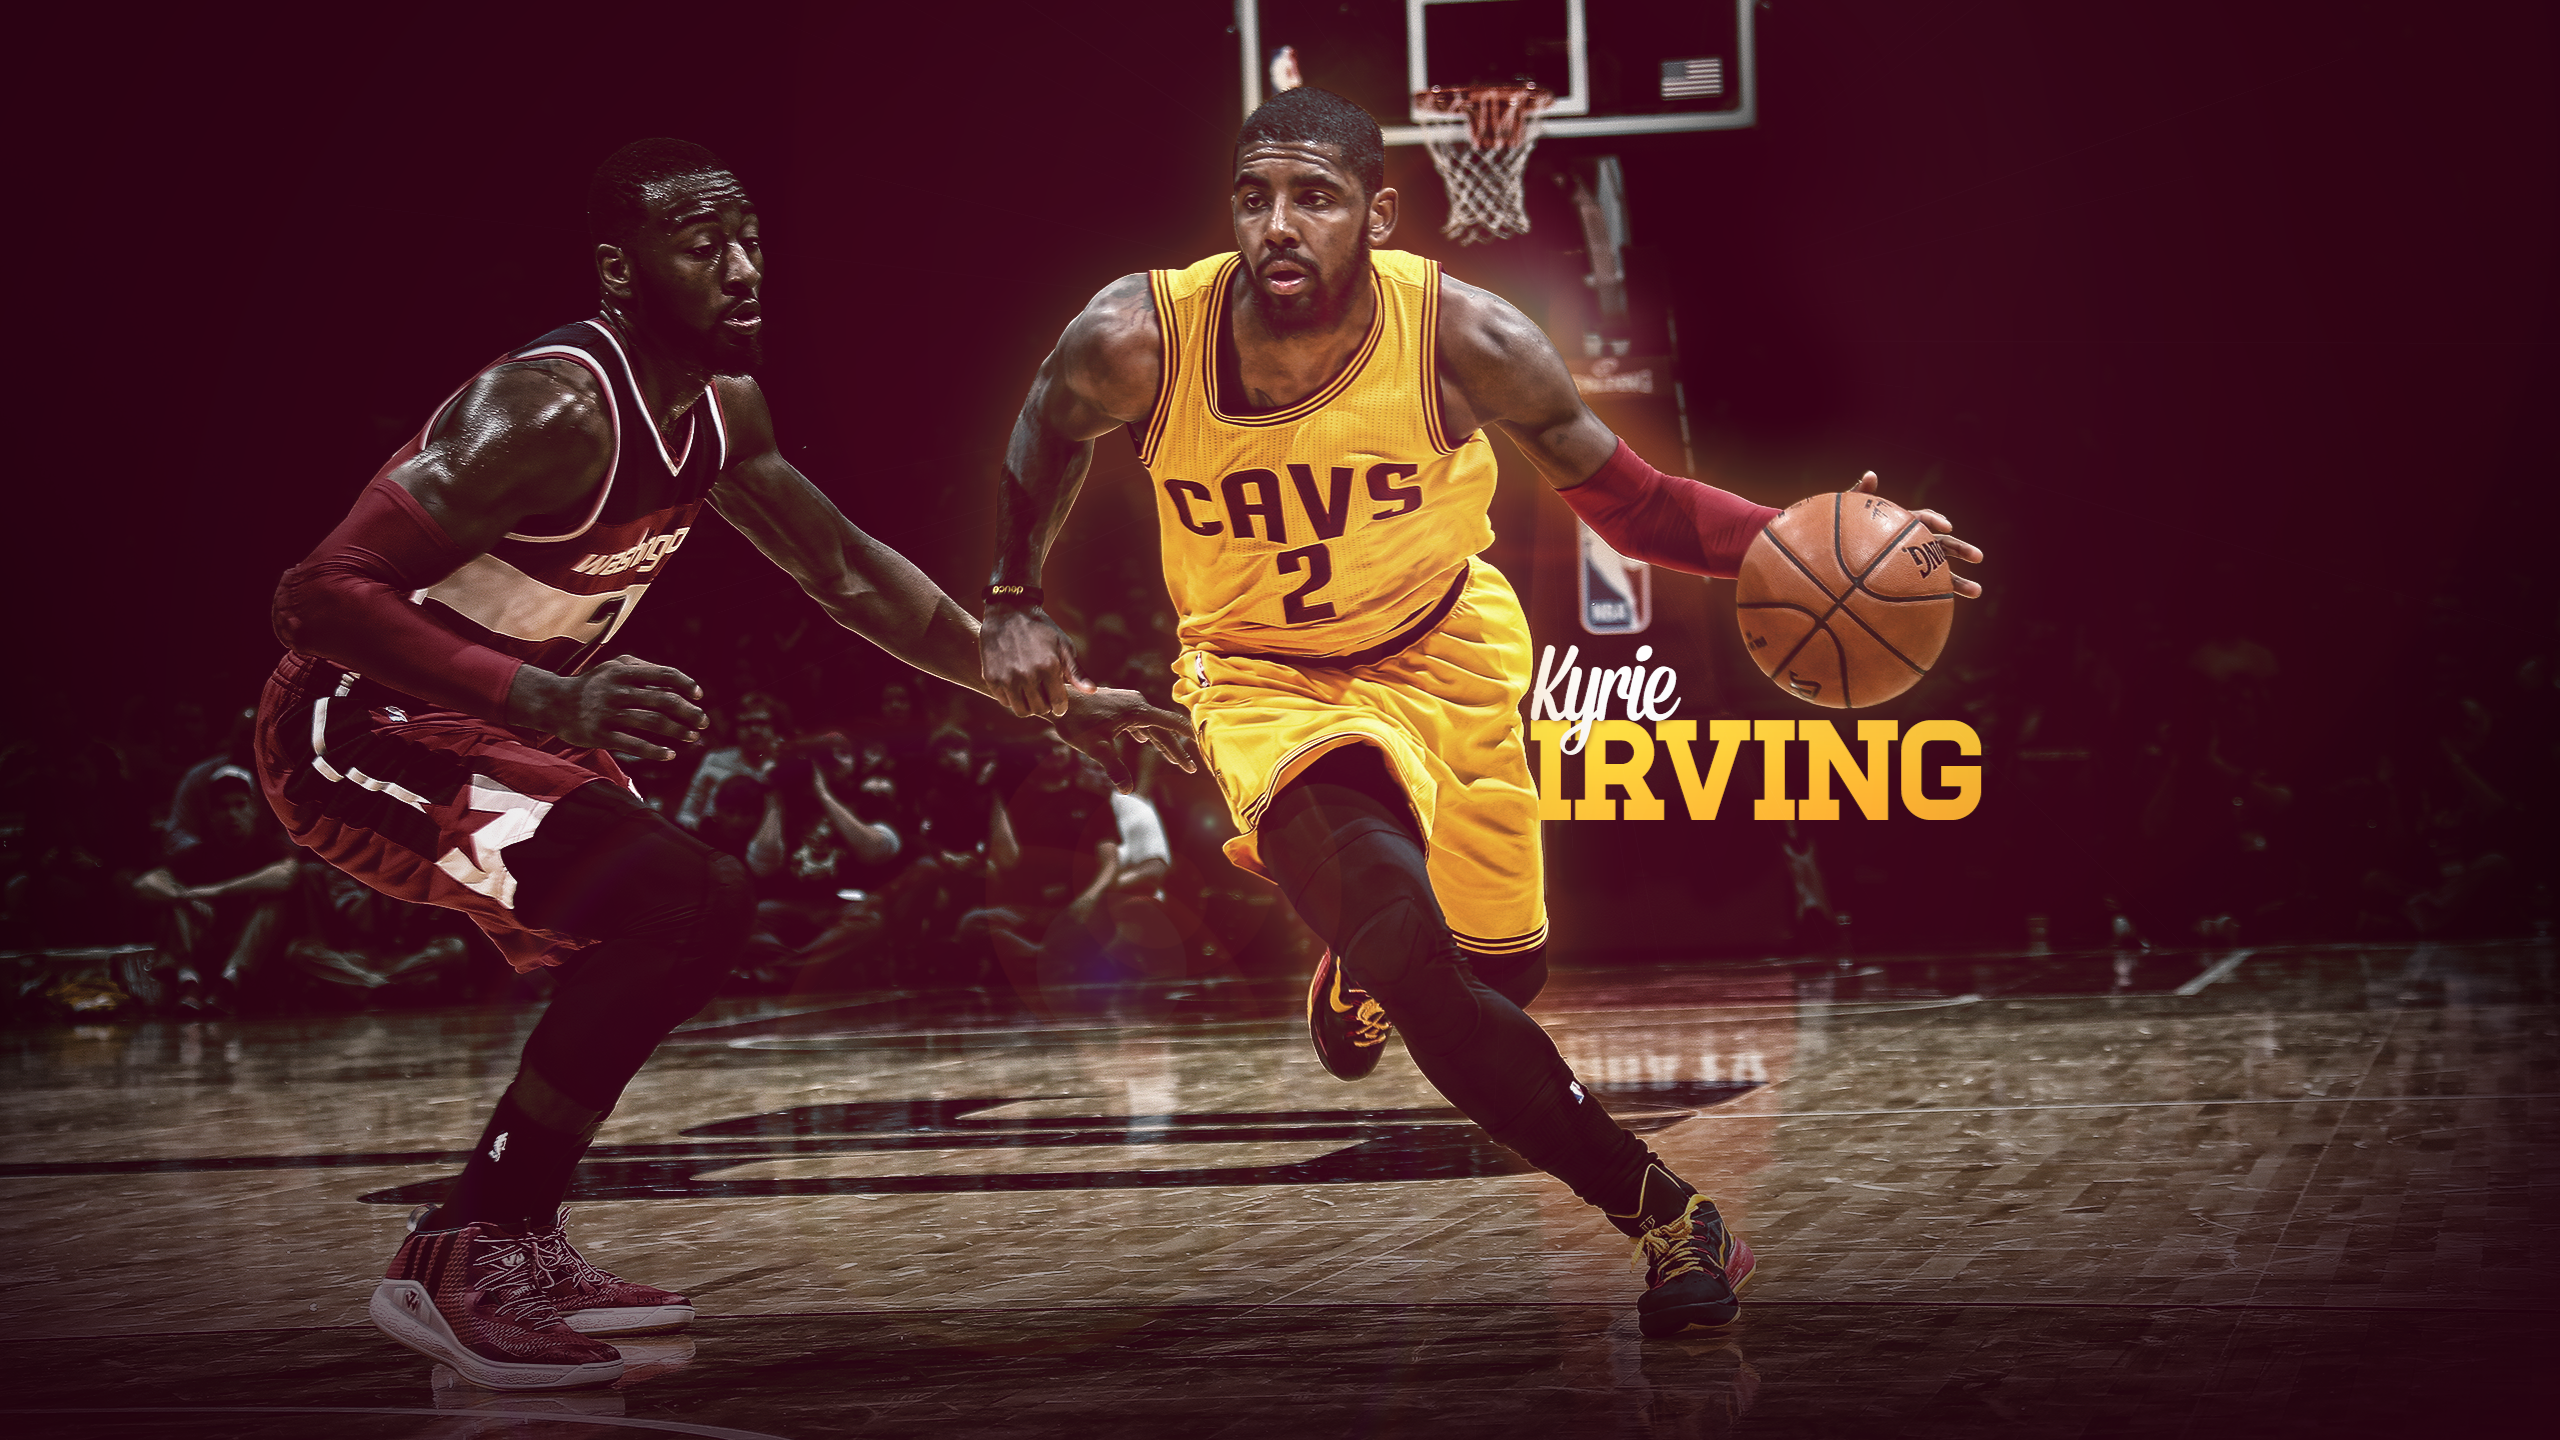 Kyrie Irving Hd Wallpaper Iphone Posted By Zoey Walker